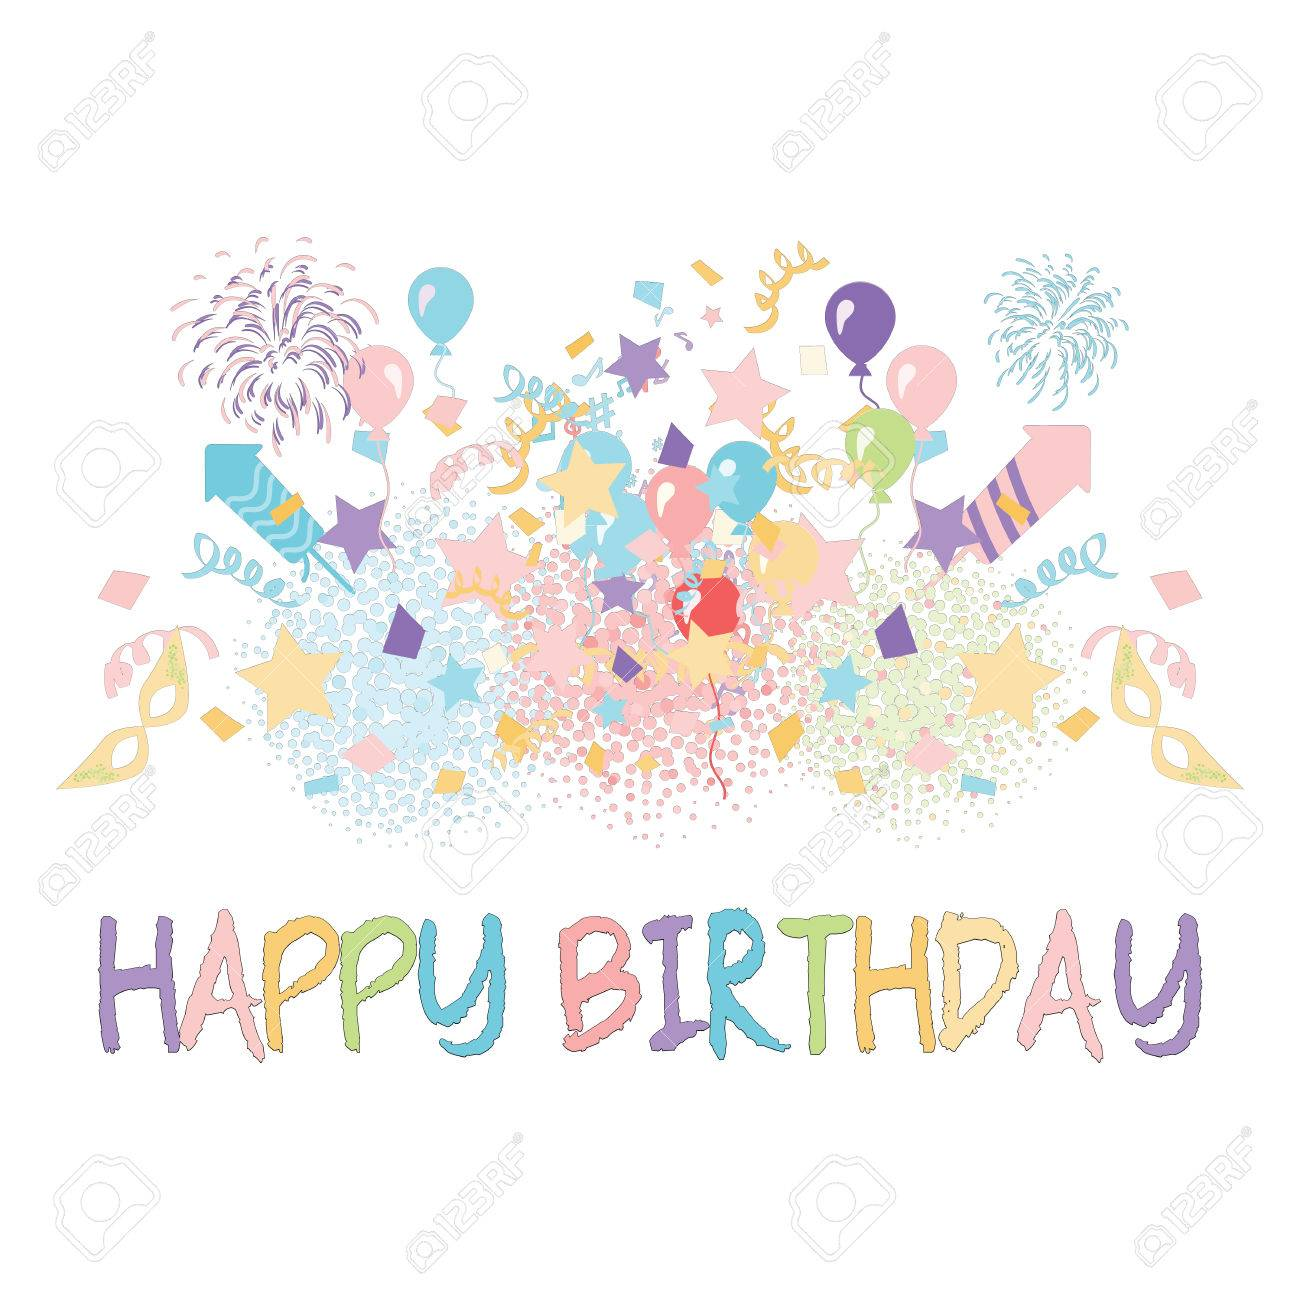 clipart of birthday wishes ; 85606593-pastel-party-with-confetti-balloons-and-happy-birthday-greeting-in-the-middle-